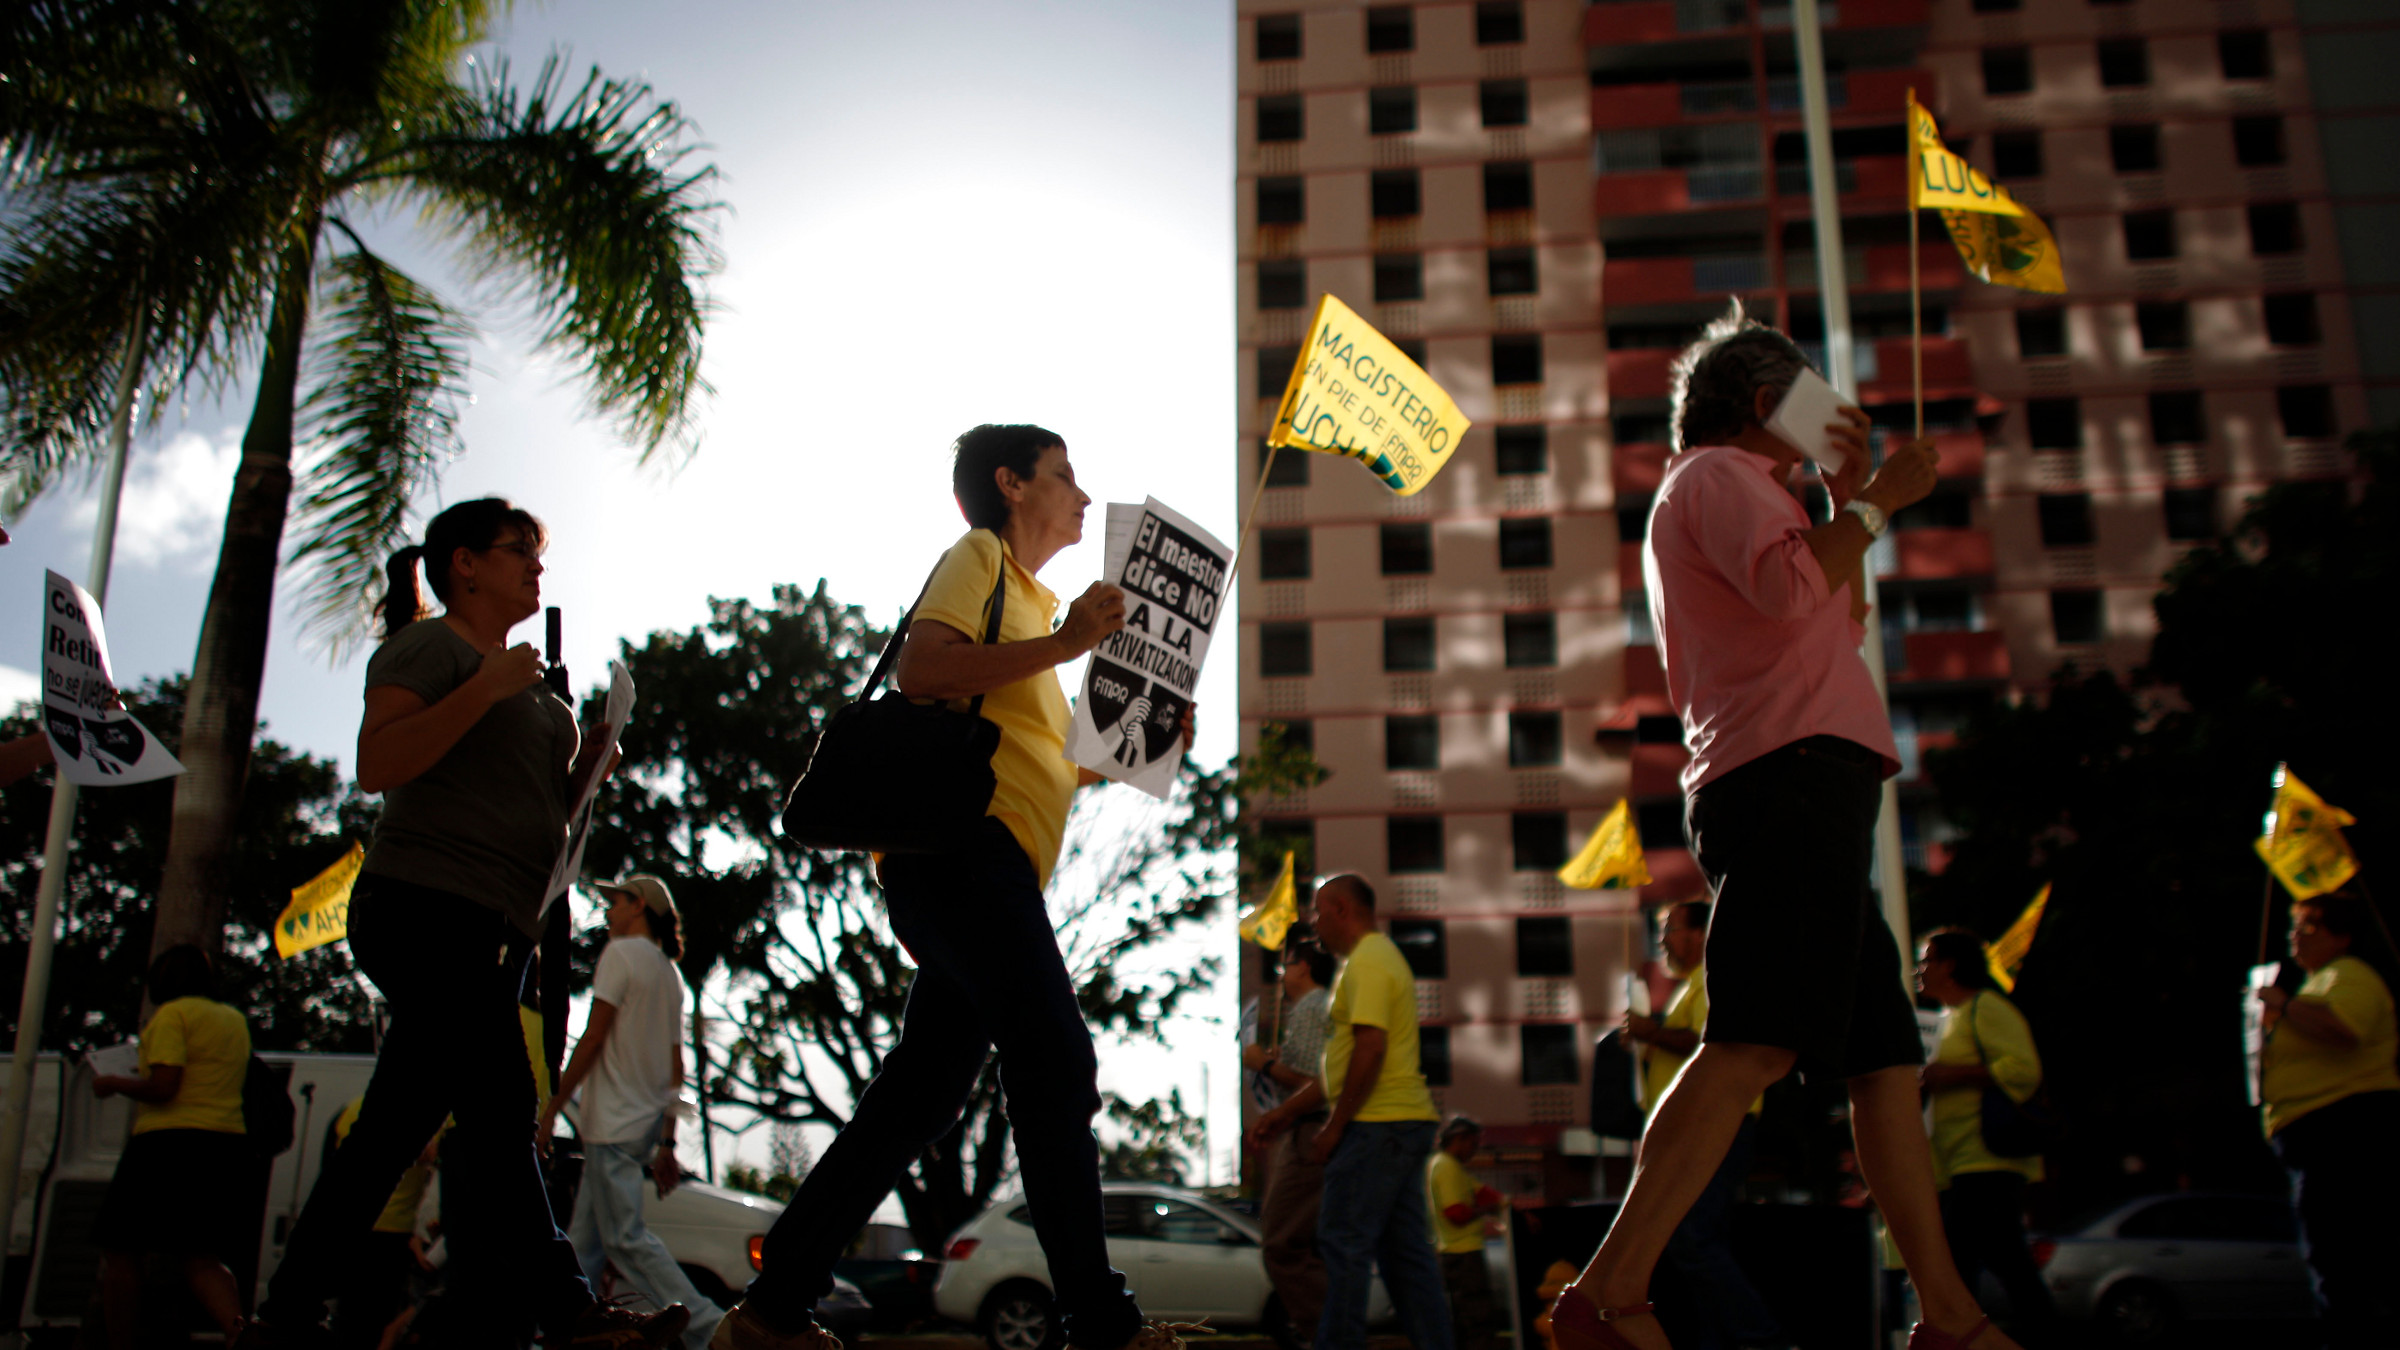 People protest outside the government pension headquarters in San Juan, Puerto Rico, Wednesday, Jan. 30, 2013.